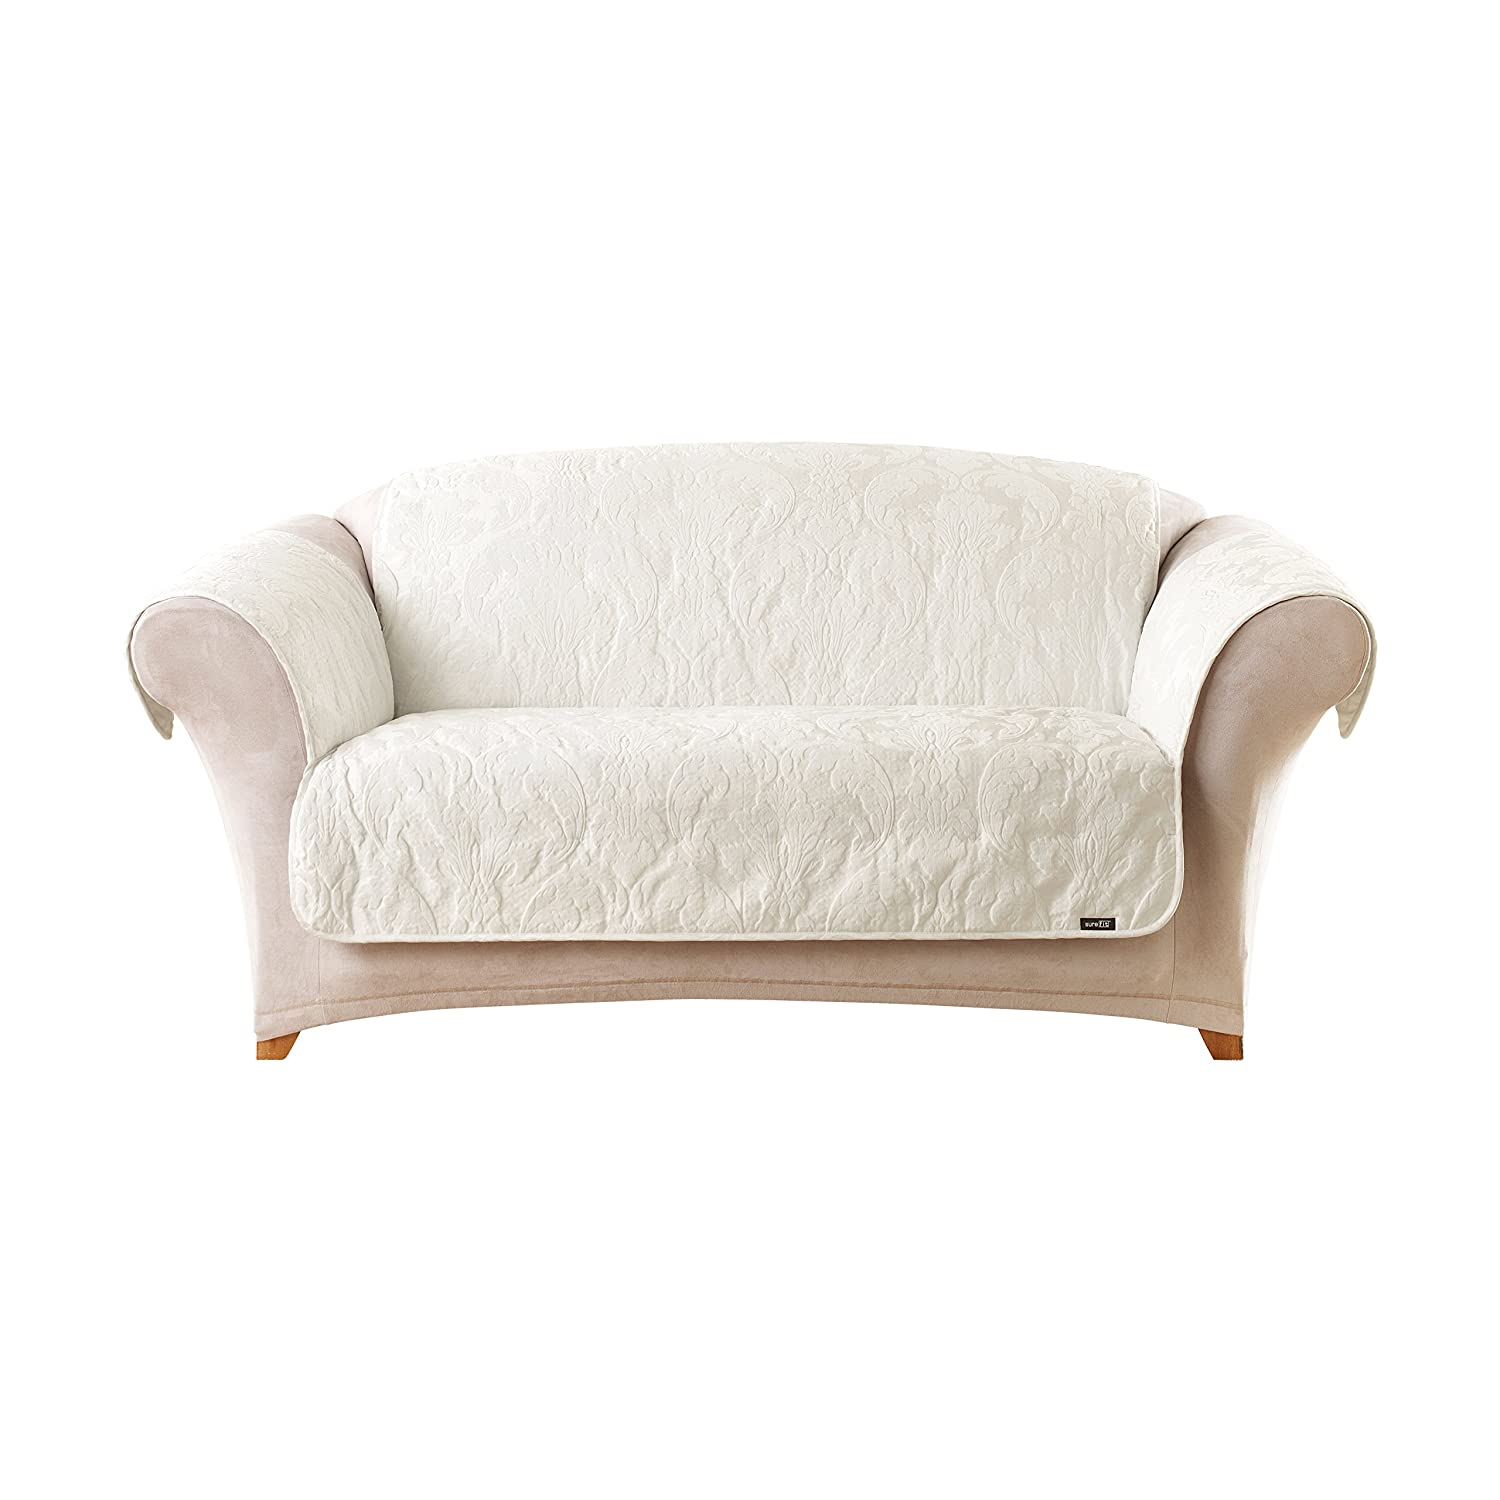 Amazon Sure Fit Matelasse Damask Loveseat Slipcover Linen